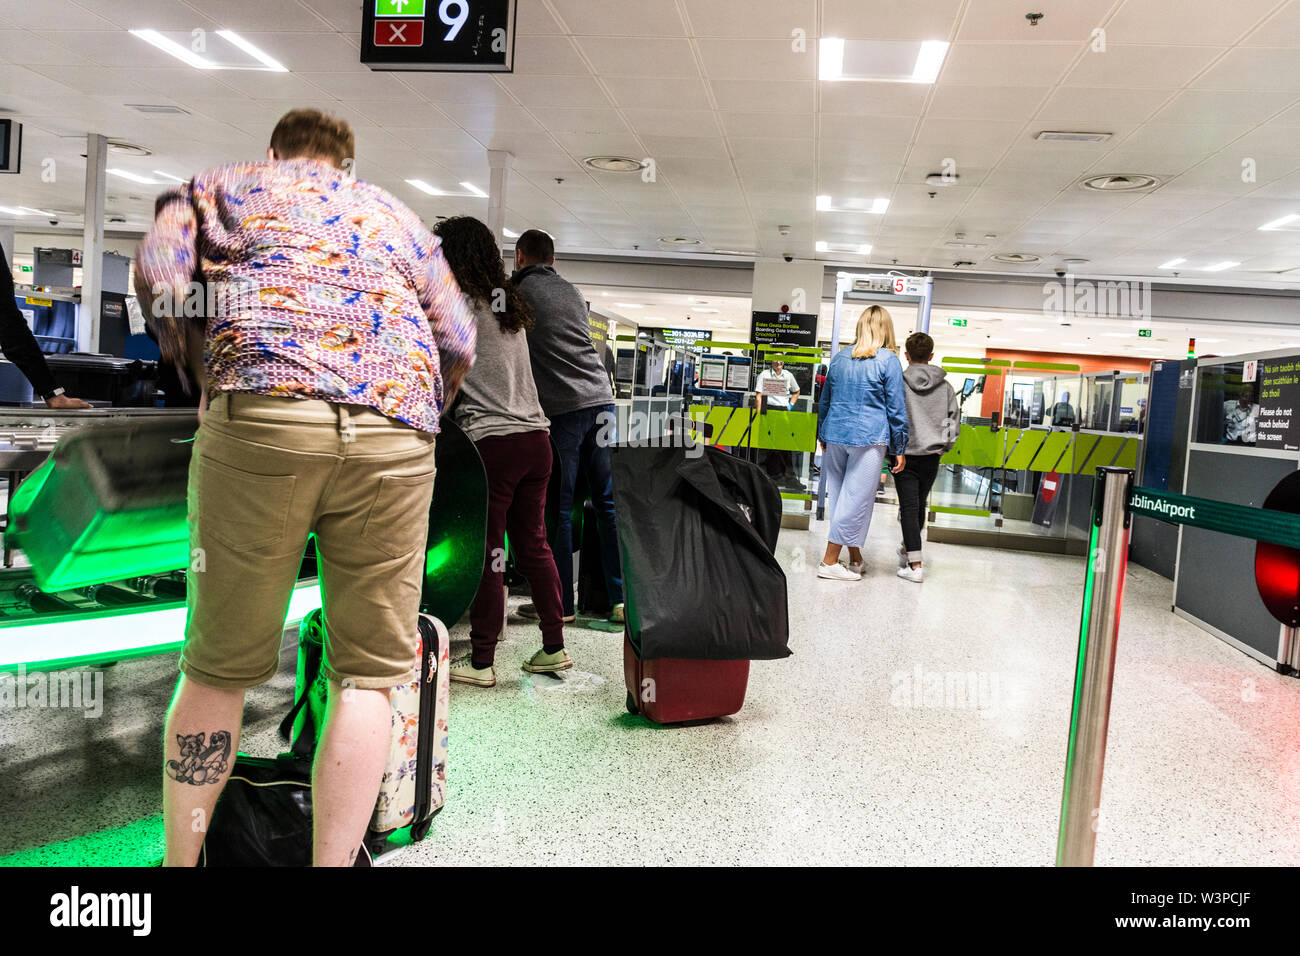 Dublin Airport, Terminal One, security screening area. Ireland - Stock Image